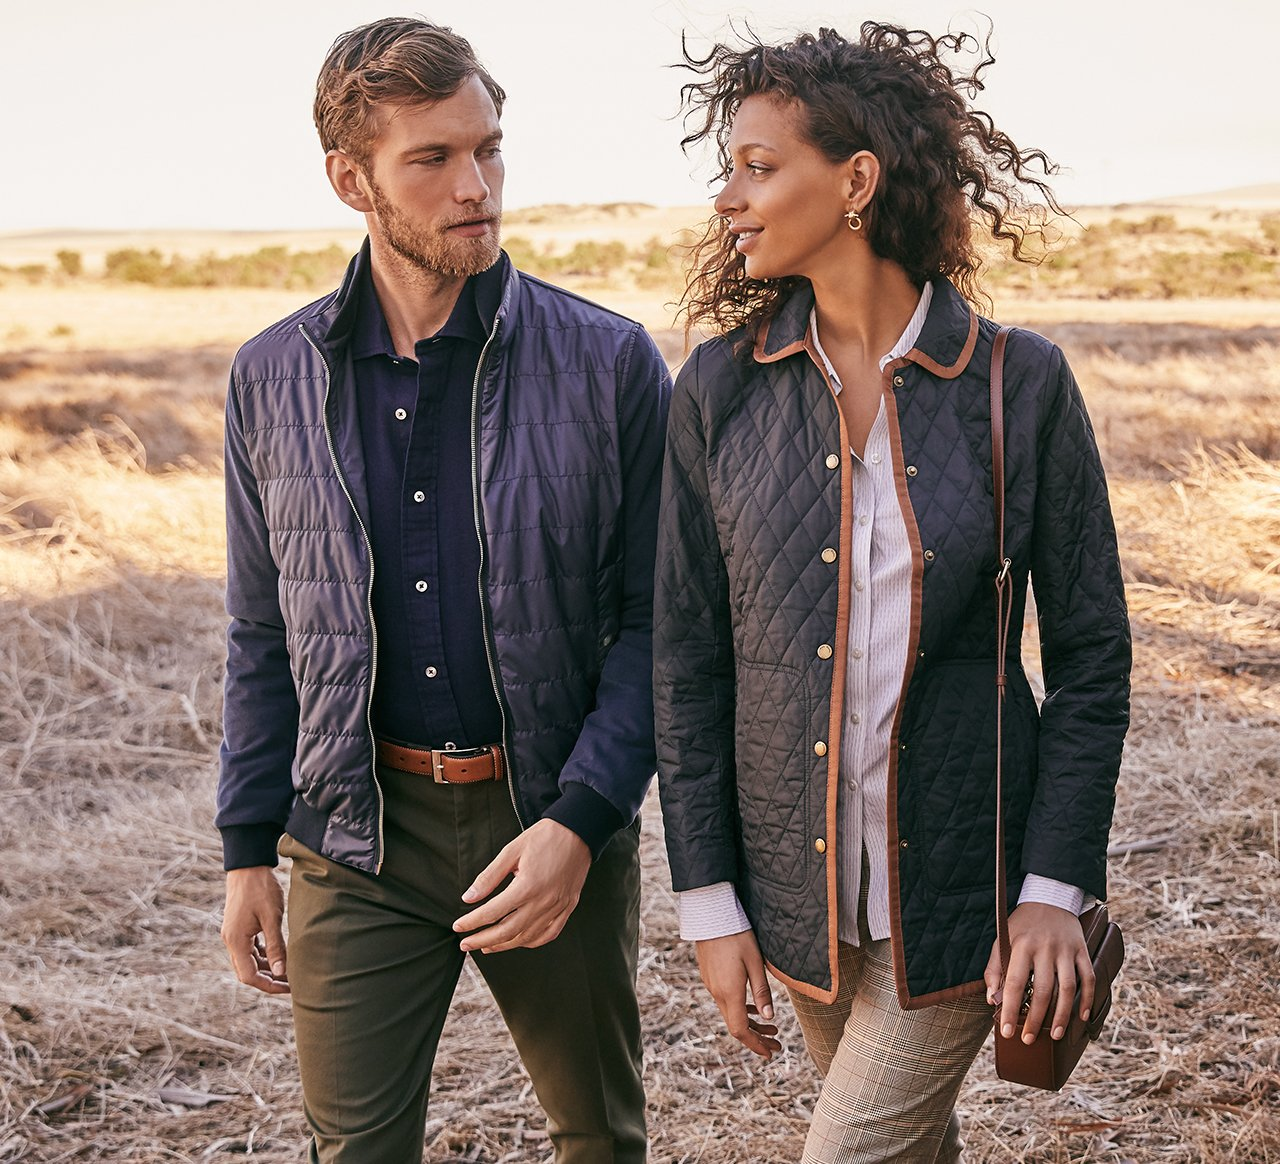 Wardrobe Essentials: Classic Layers - Add a dose of autumnal style with timeless coats for him and her.